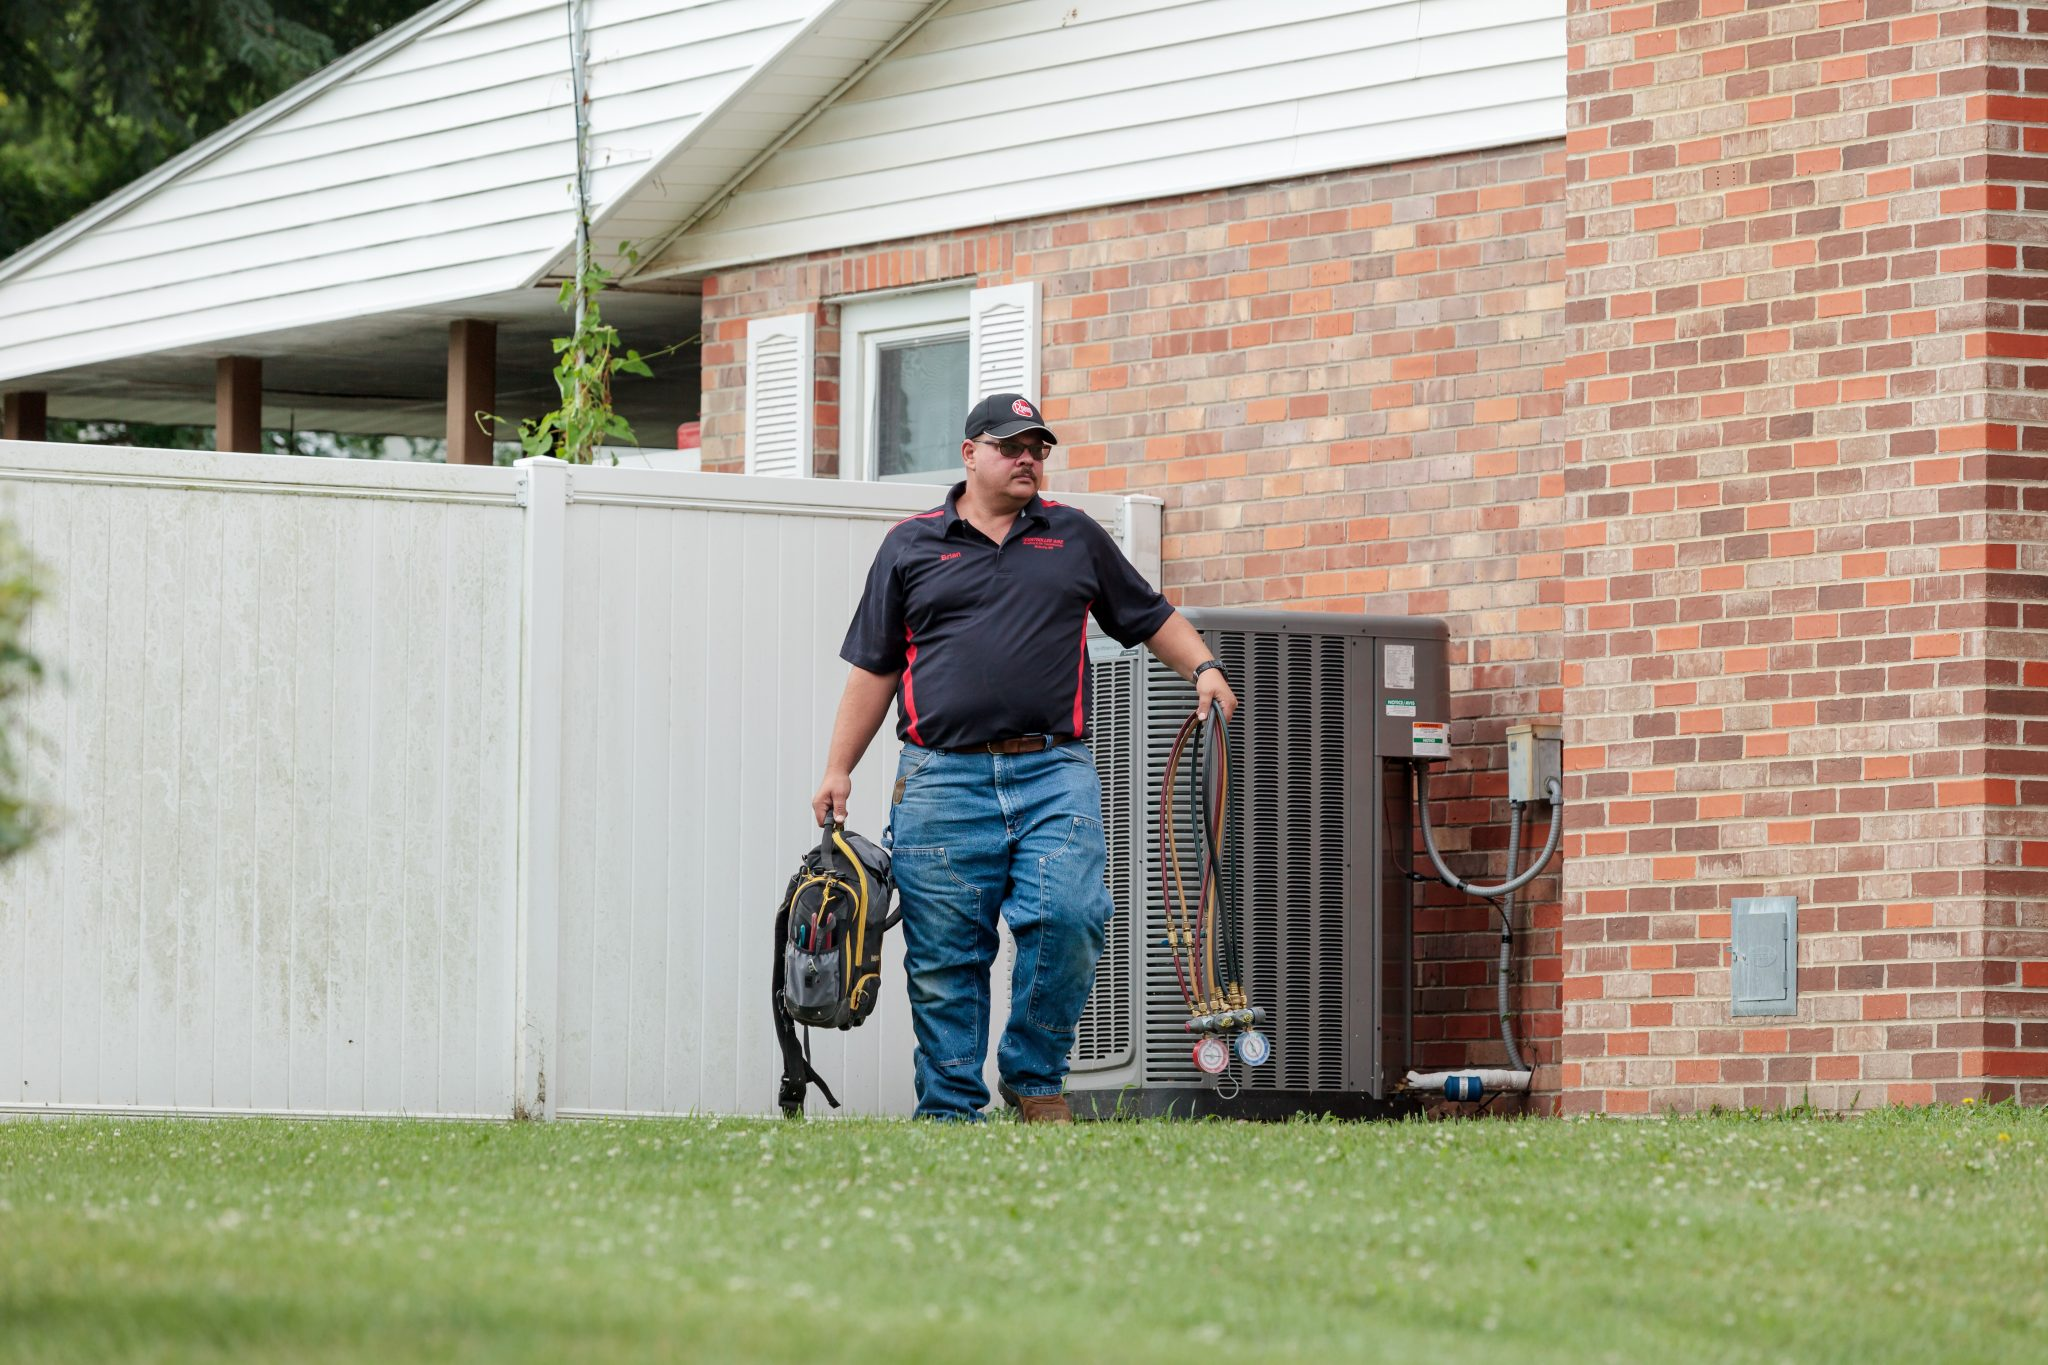 A Controlled Aire employee working on an HVAC project at a customer's house